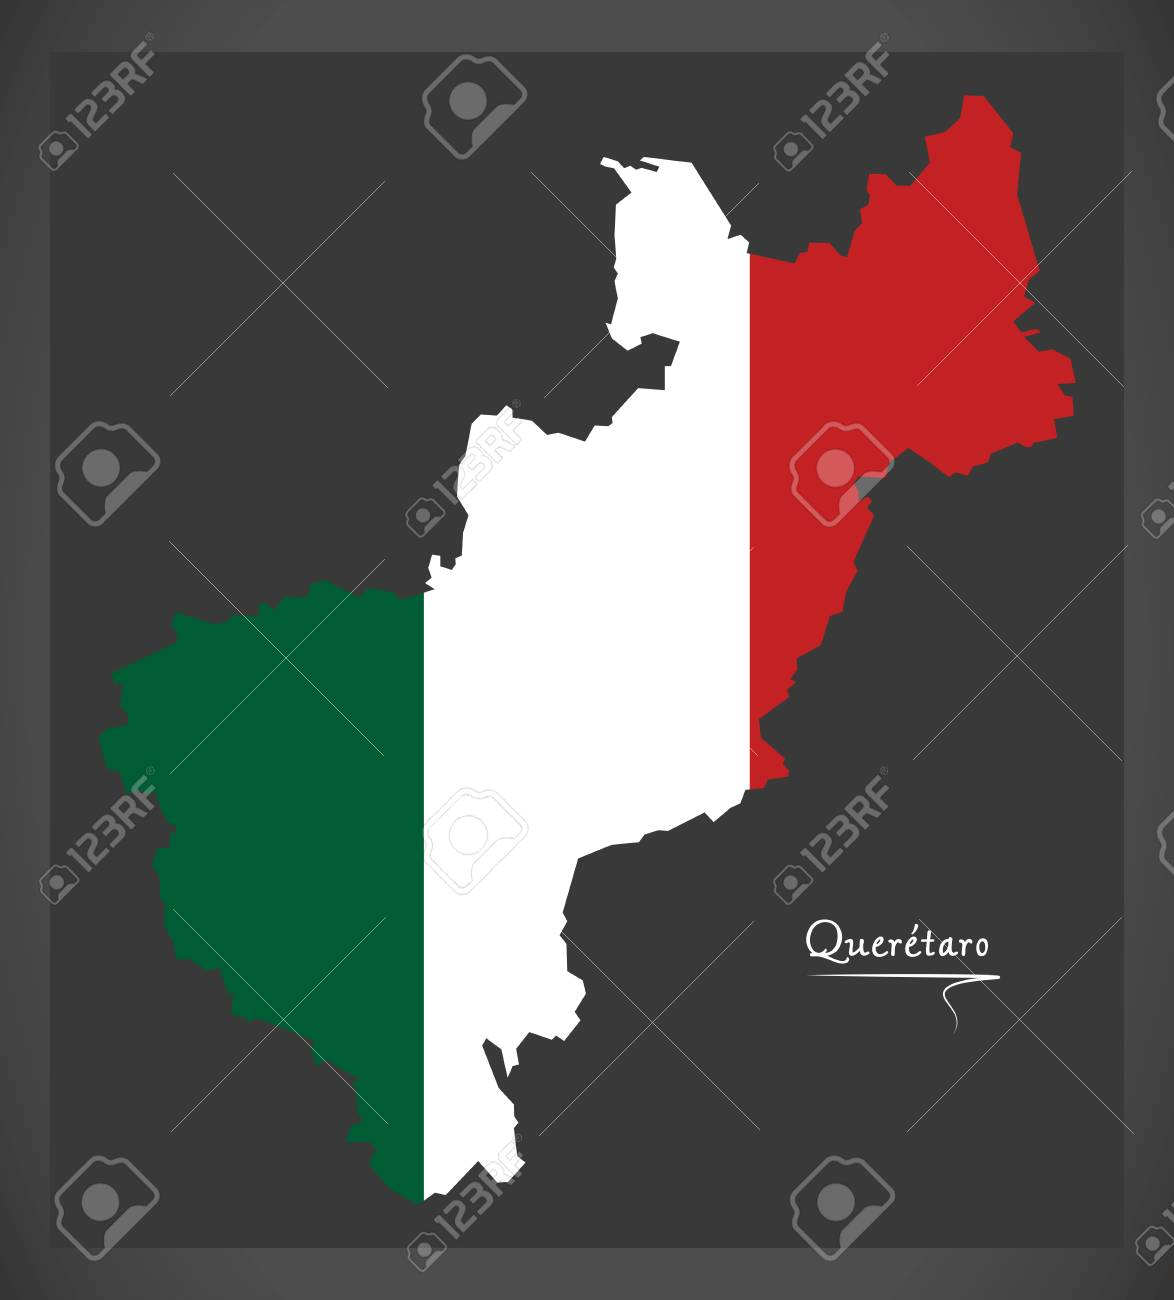 Queretaro Map With Mexican National Flag Illustration Royalty Free